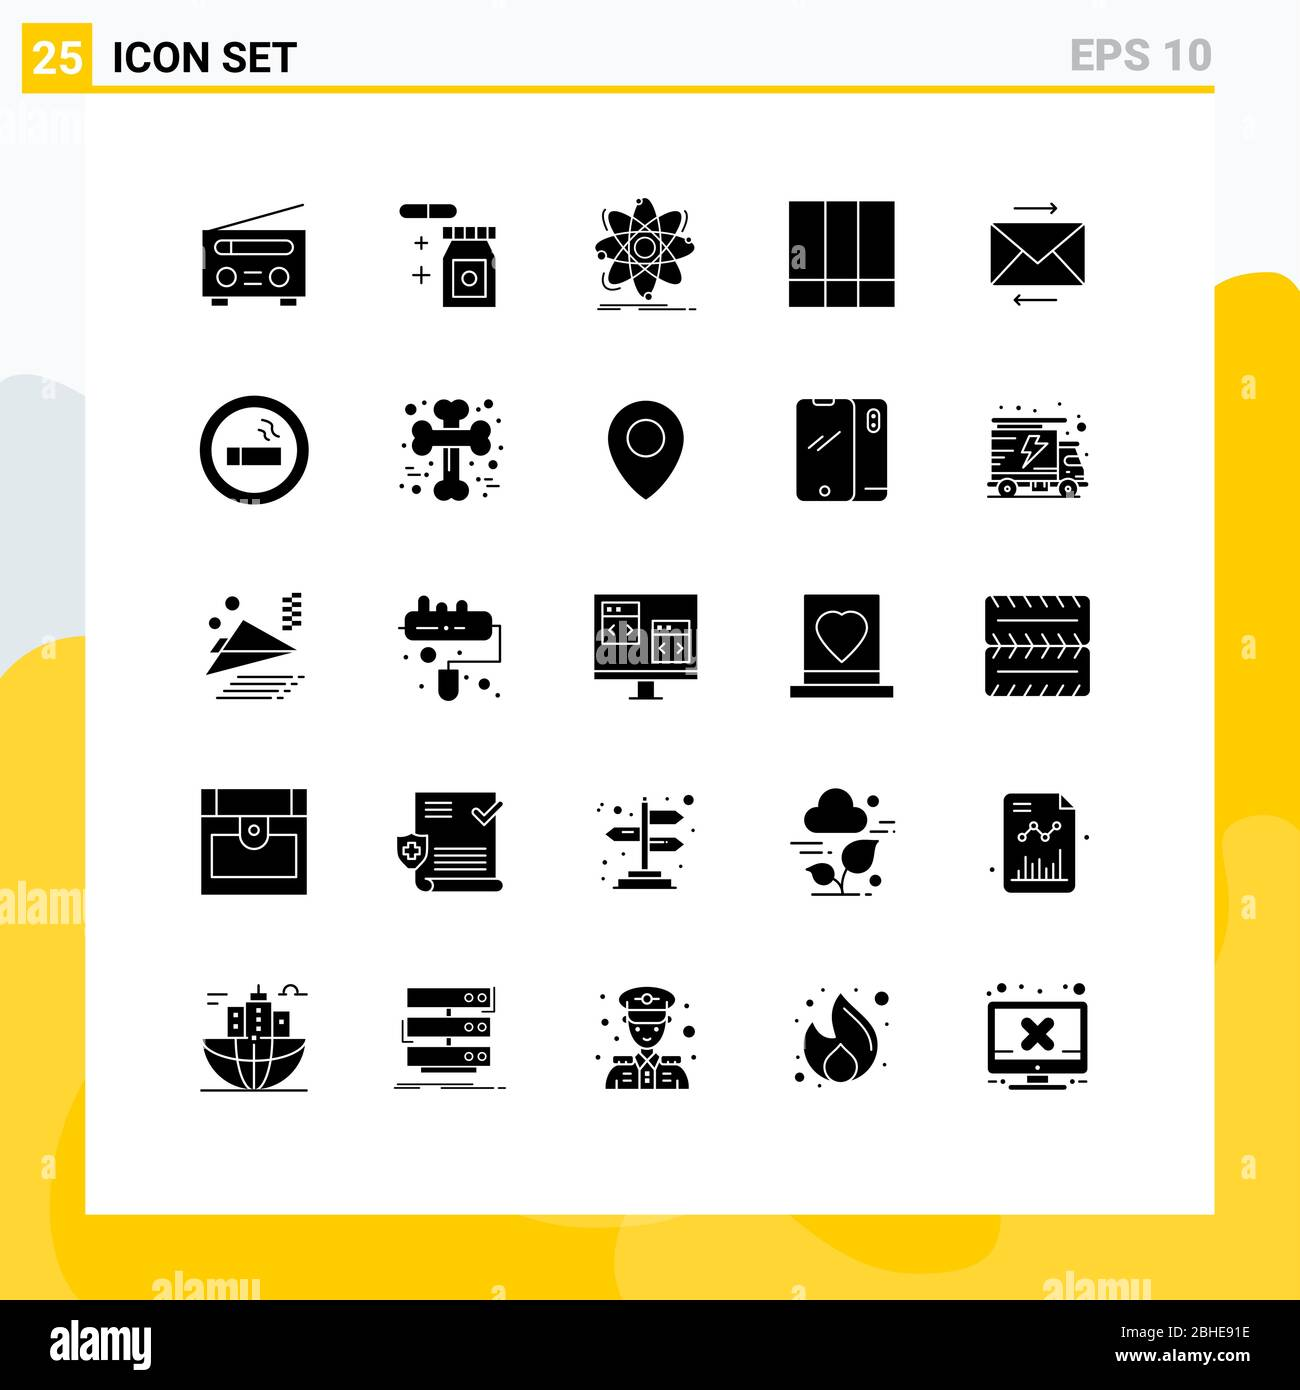 25 Thematic Vector Solid Glyphs and Editable Symbols of share, lines, science, layout, grid Editable Vector Design Elements Stock Vector